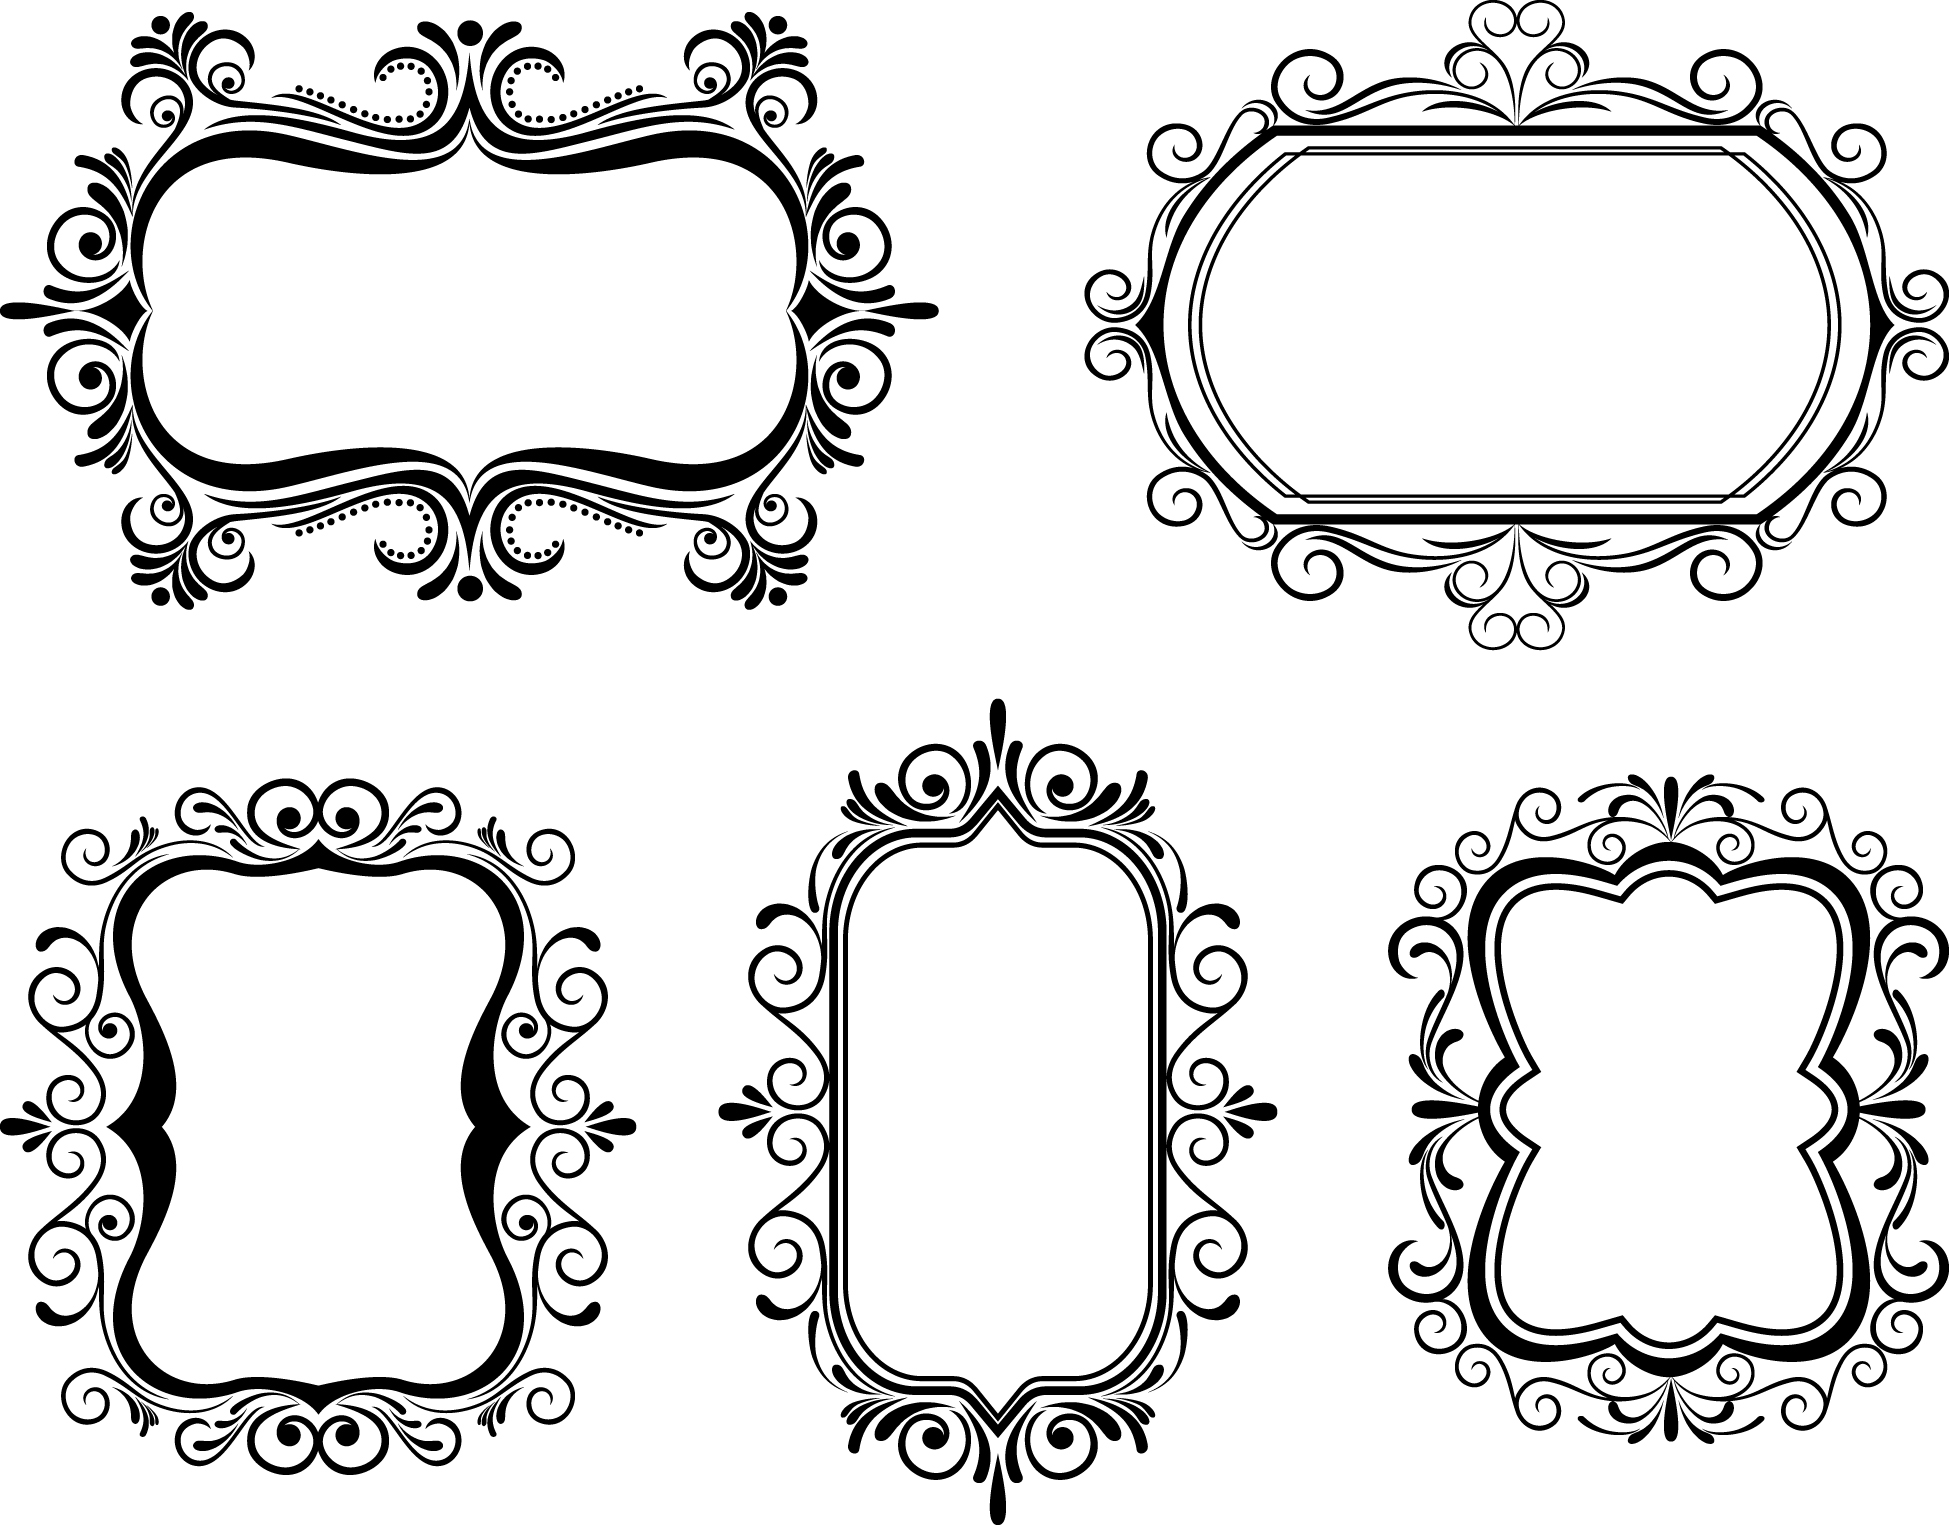 Frame vector clipart. Free borders download clip